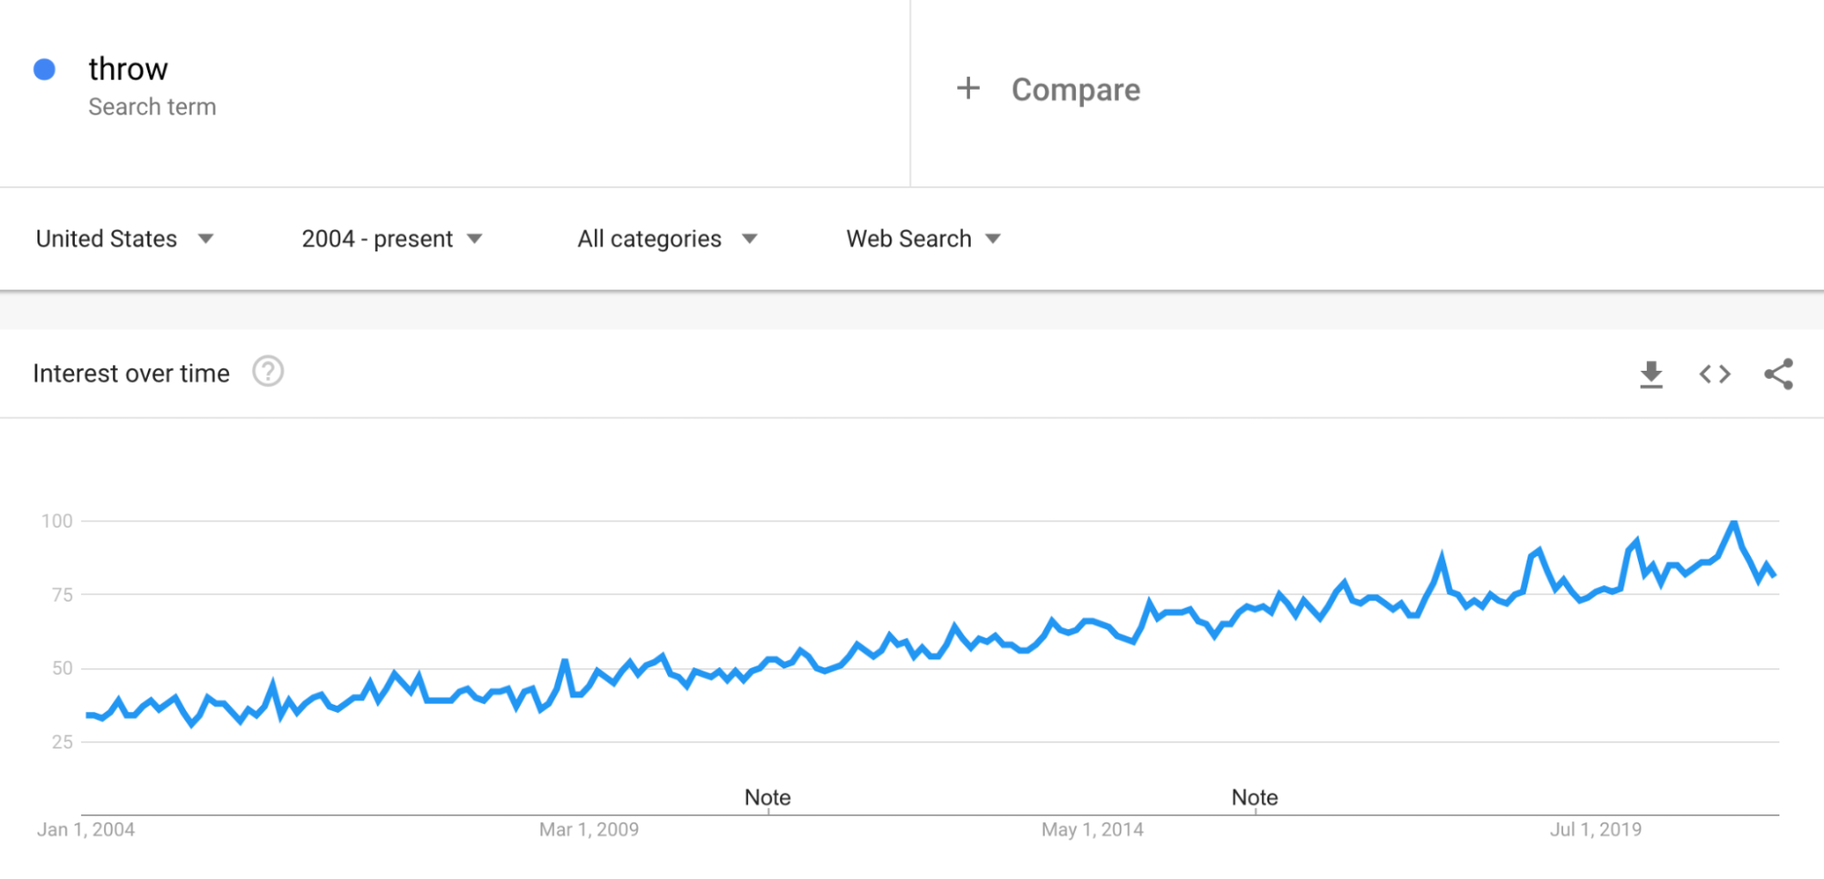 Google Trends: Throws